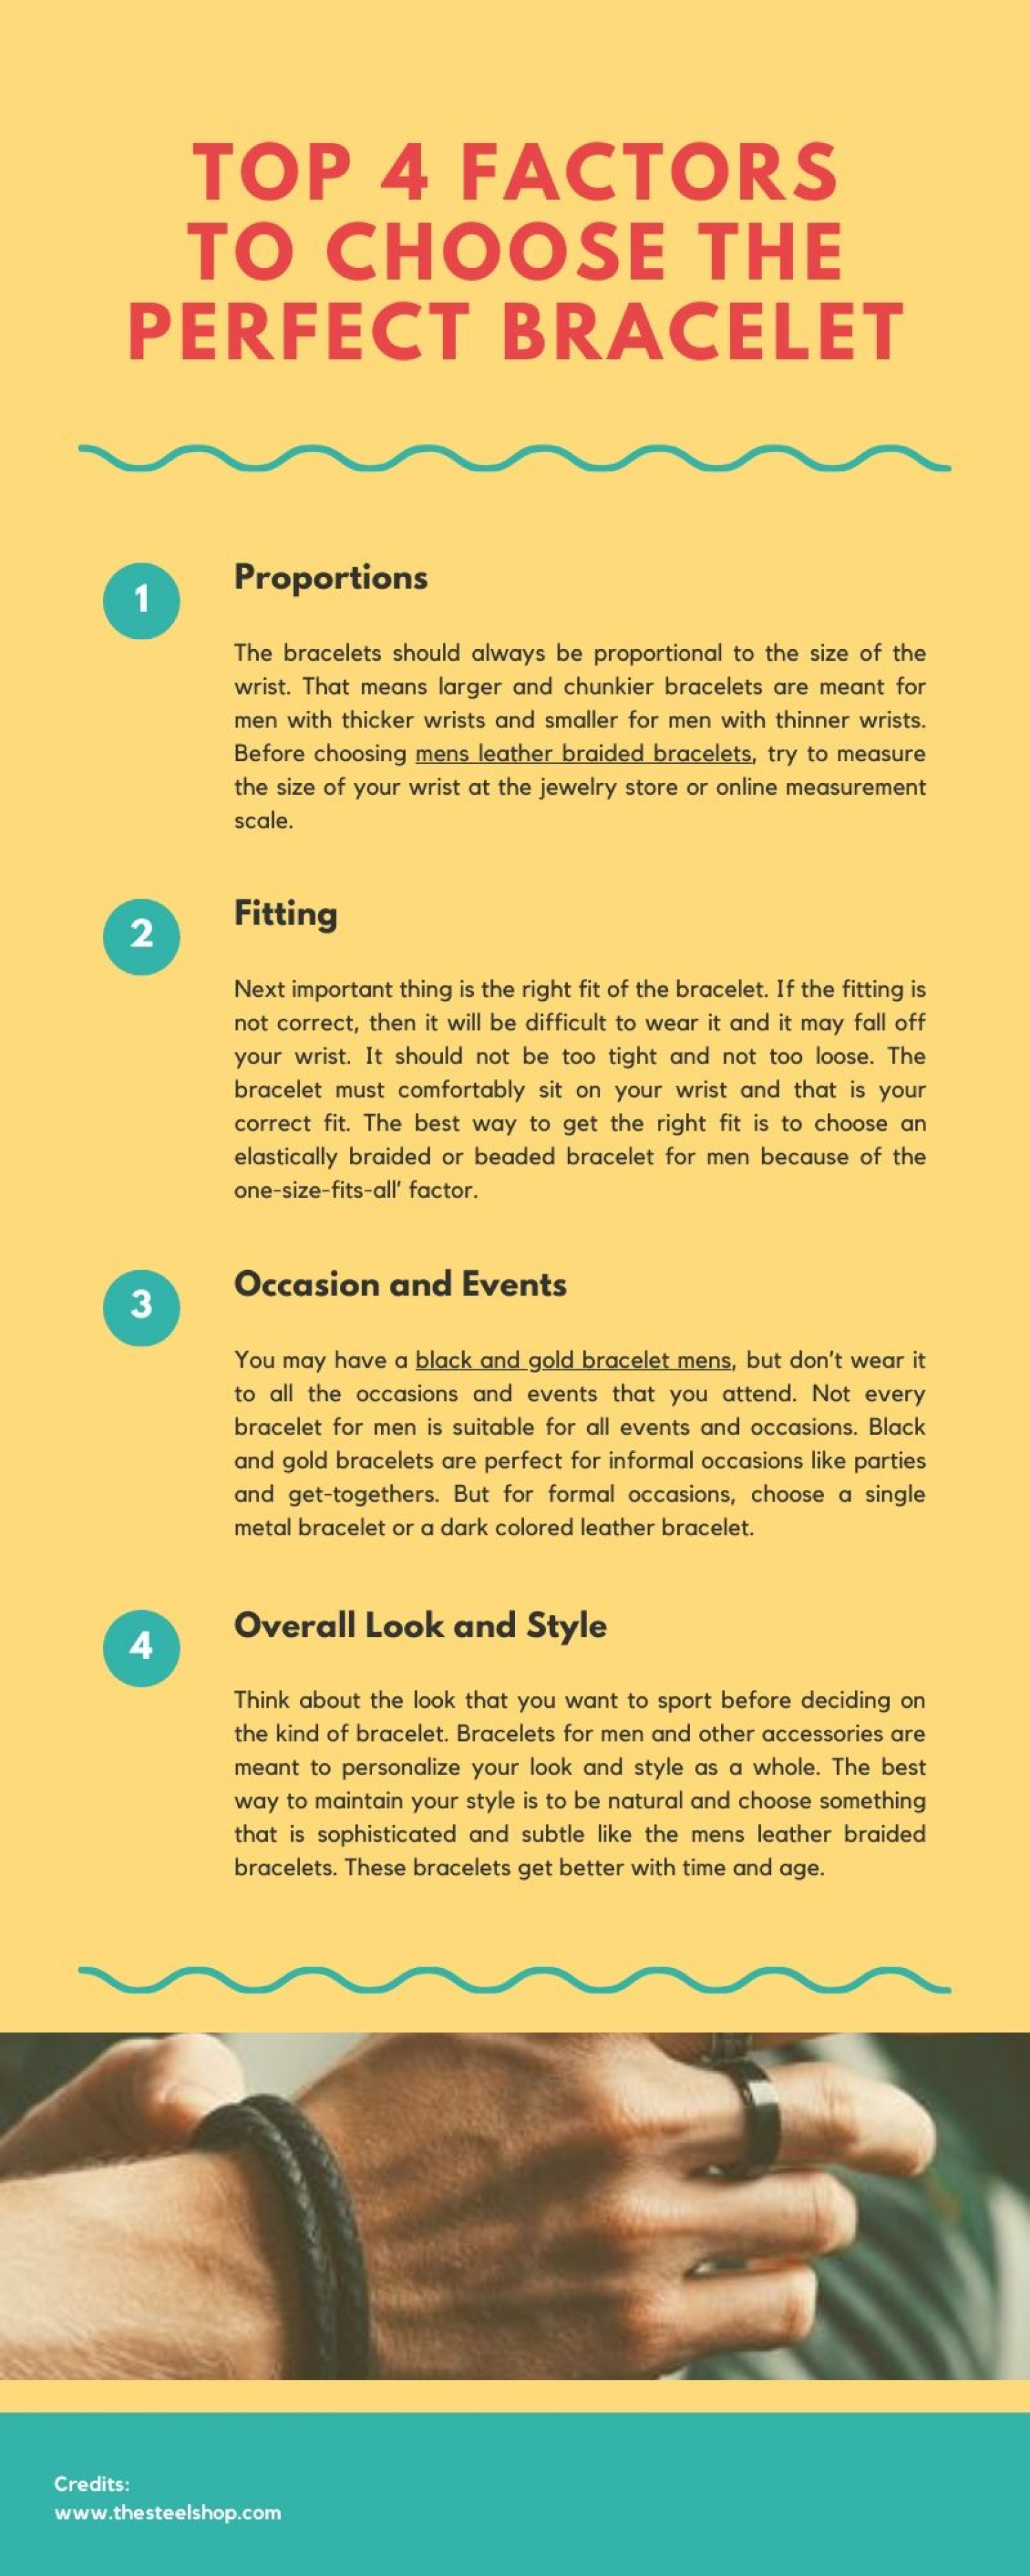 Top 4 Factors to Choose the Perfect Bracelet Infographic